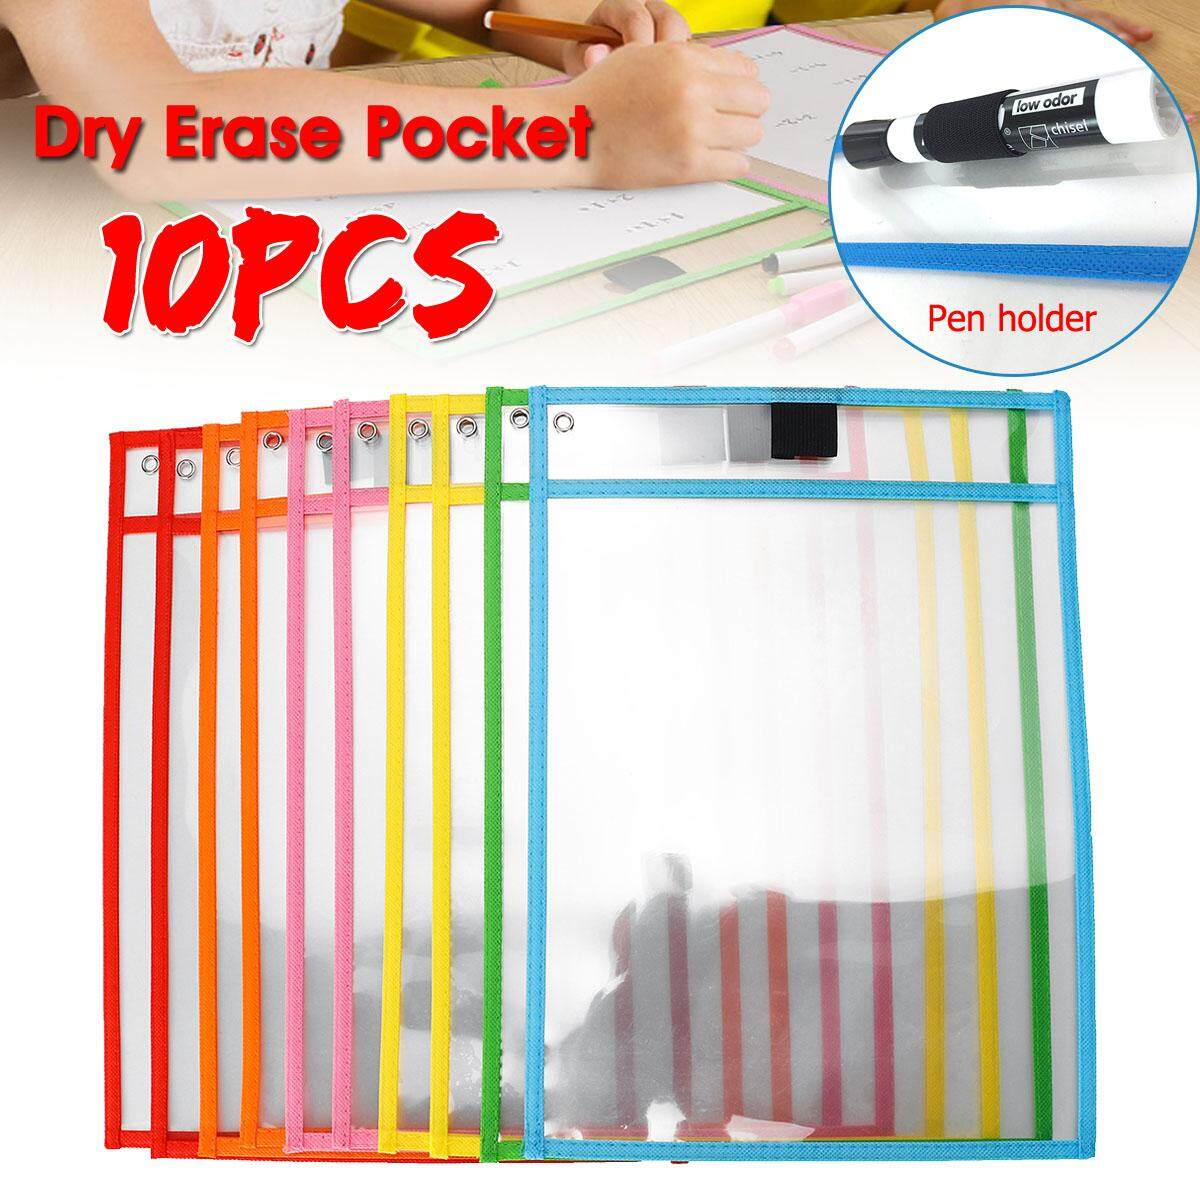 10Pcs Resuable Dry Erase Pocket Sleeves Students Kids Wipe Learning Paper Tool